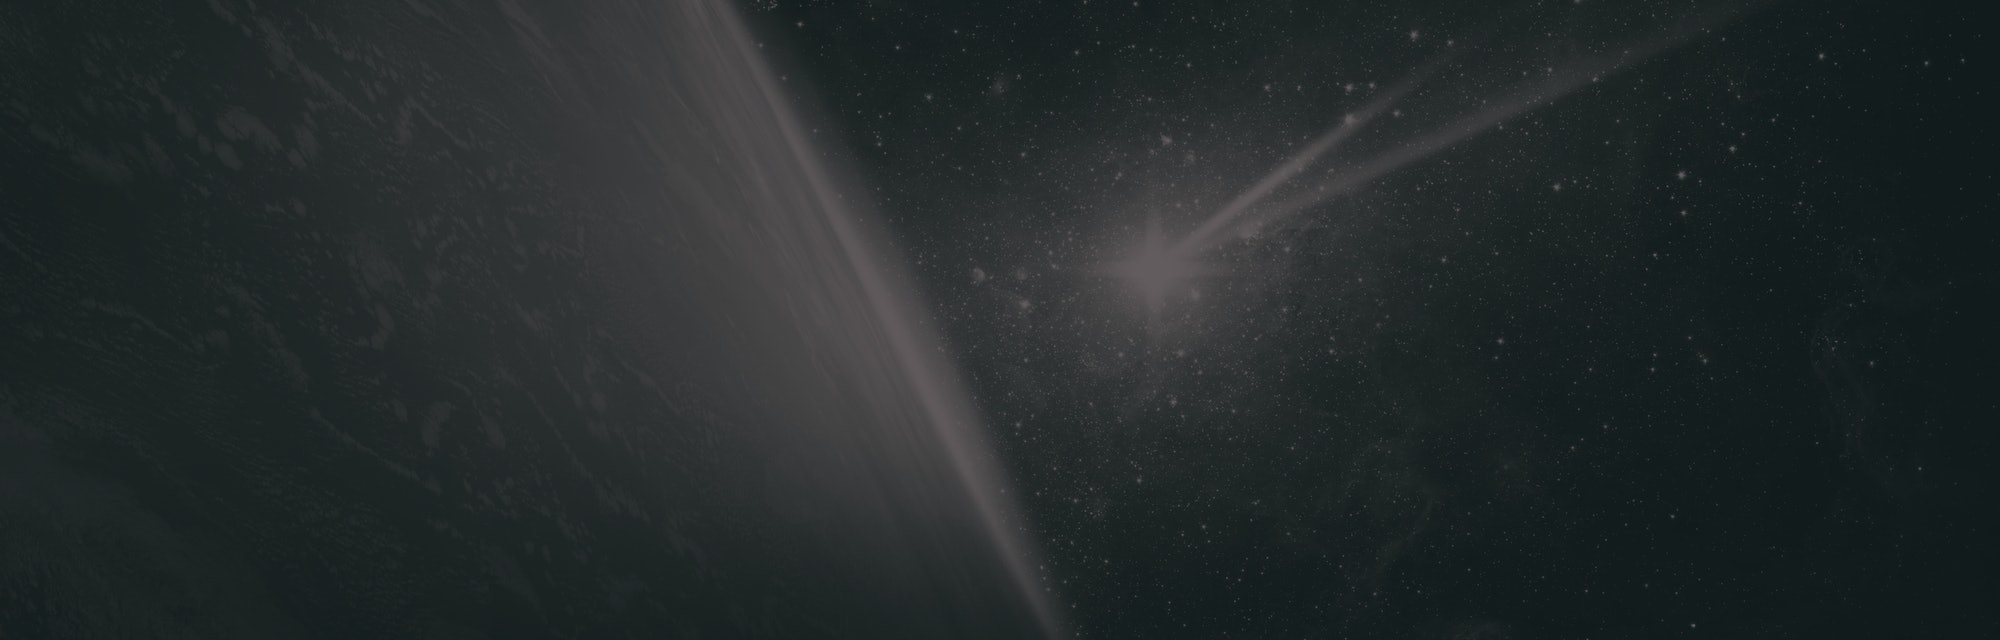 Comet, asteroid, meteorite flying to the planet Earth. Glowing asteroid and tail of a falling comet ...